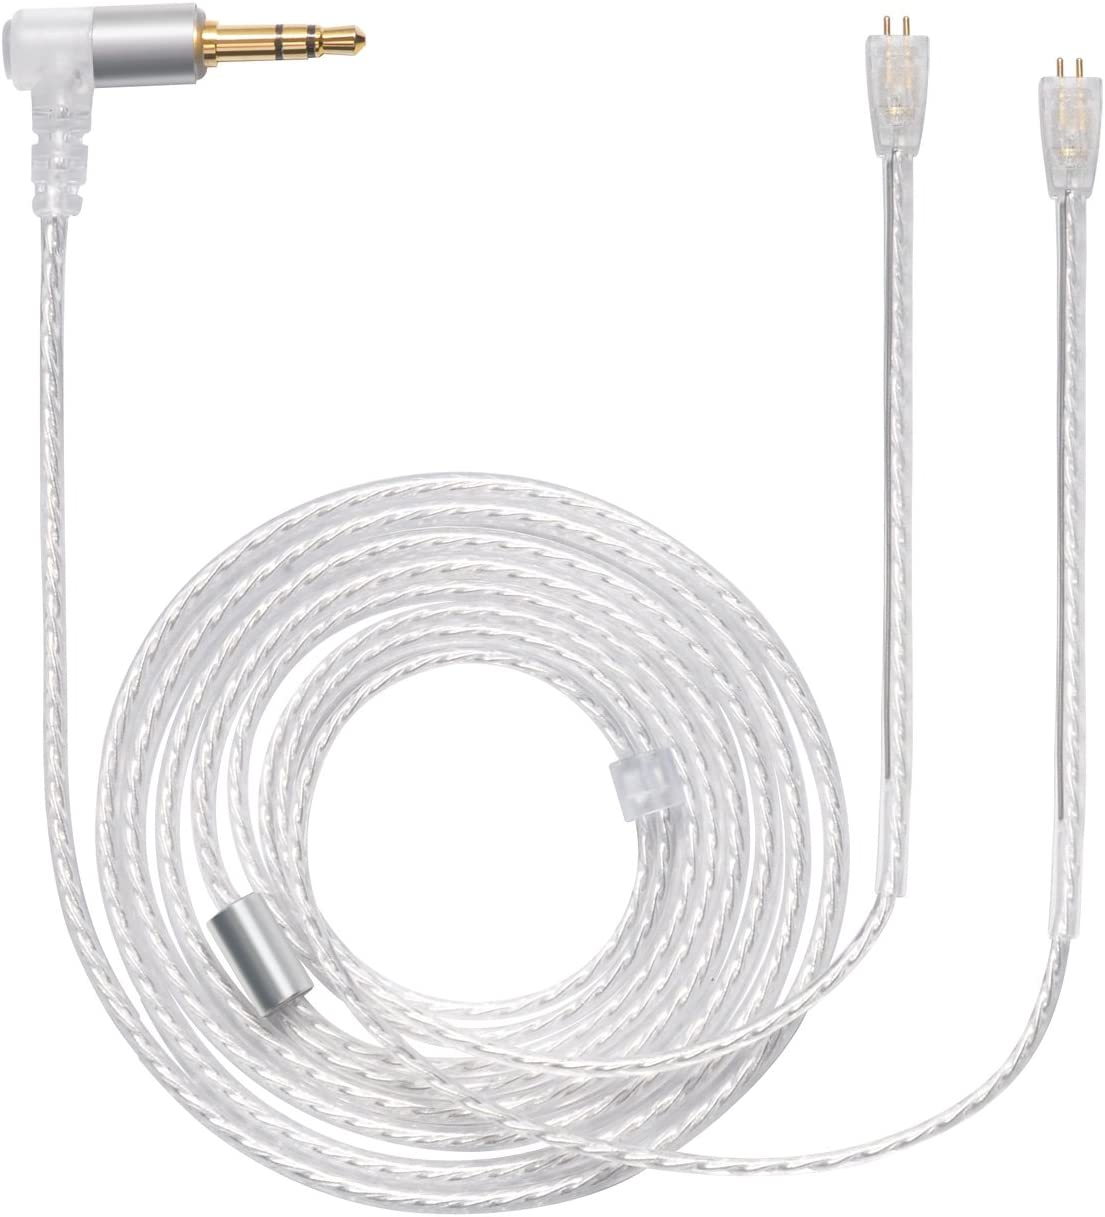 MOKOSE Replacement Upgrade Balanced Cable Silver Plated Audio Wire for Ultimate UE TripleFi 10 15vm TF10 TF15 Super.Fi 3 5pro 5EB Earphone